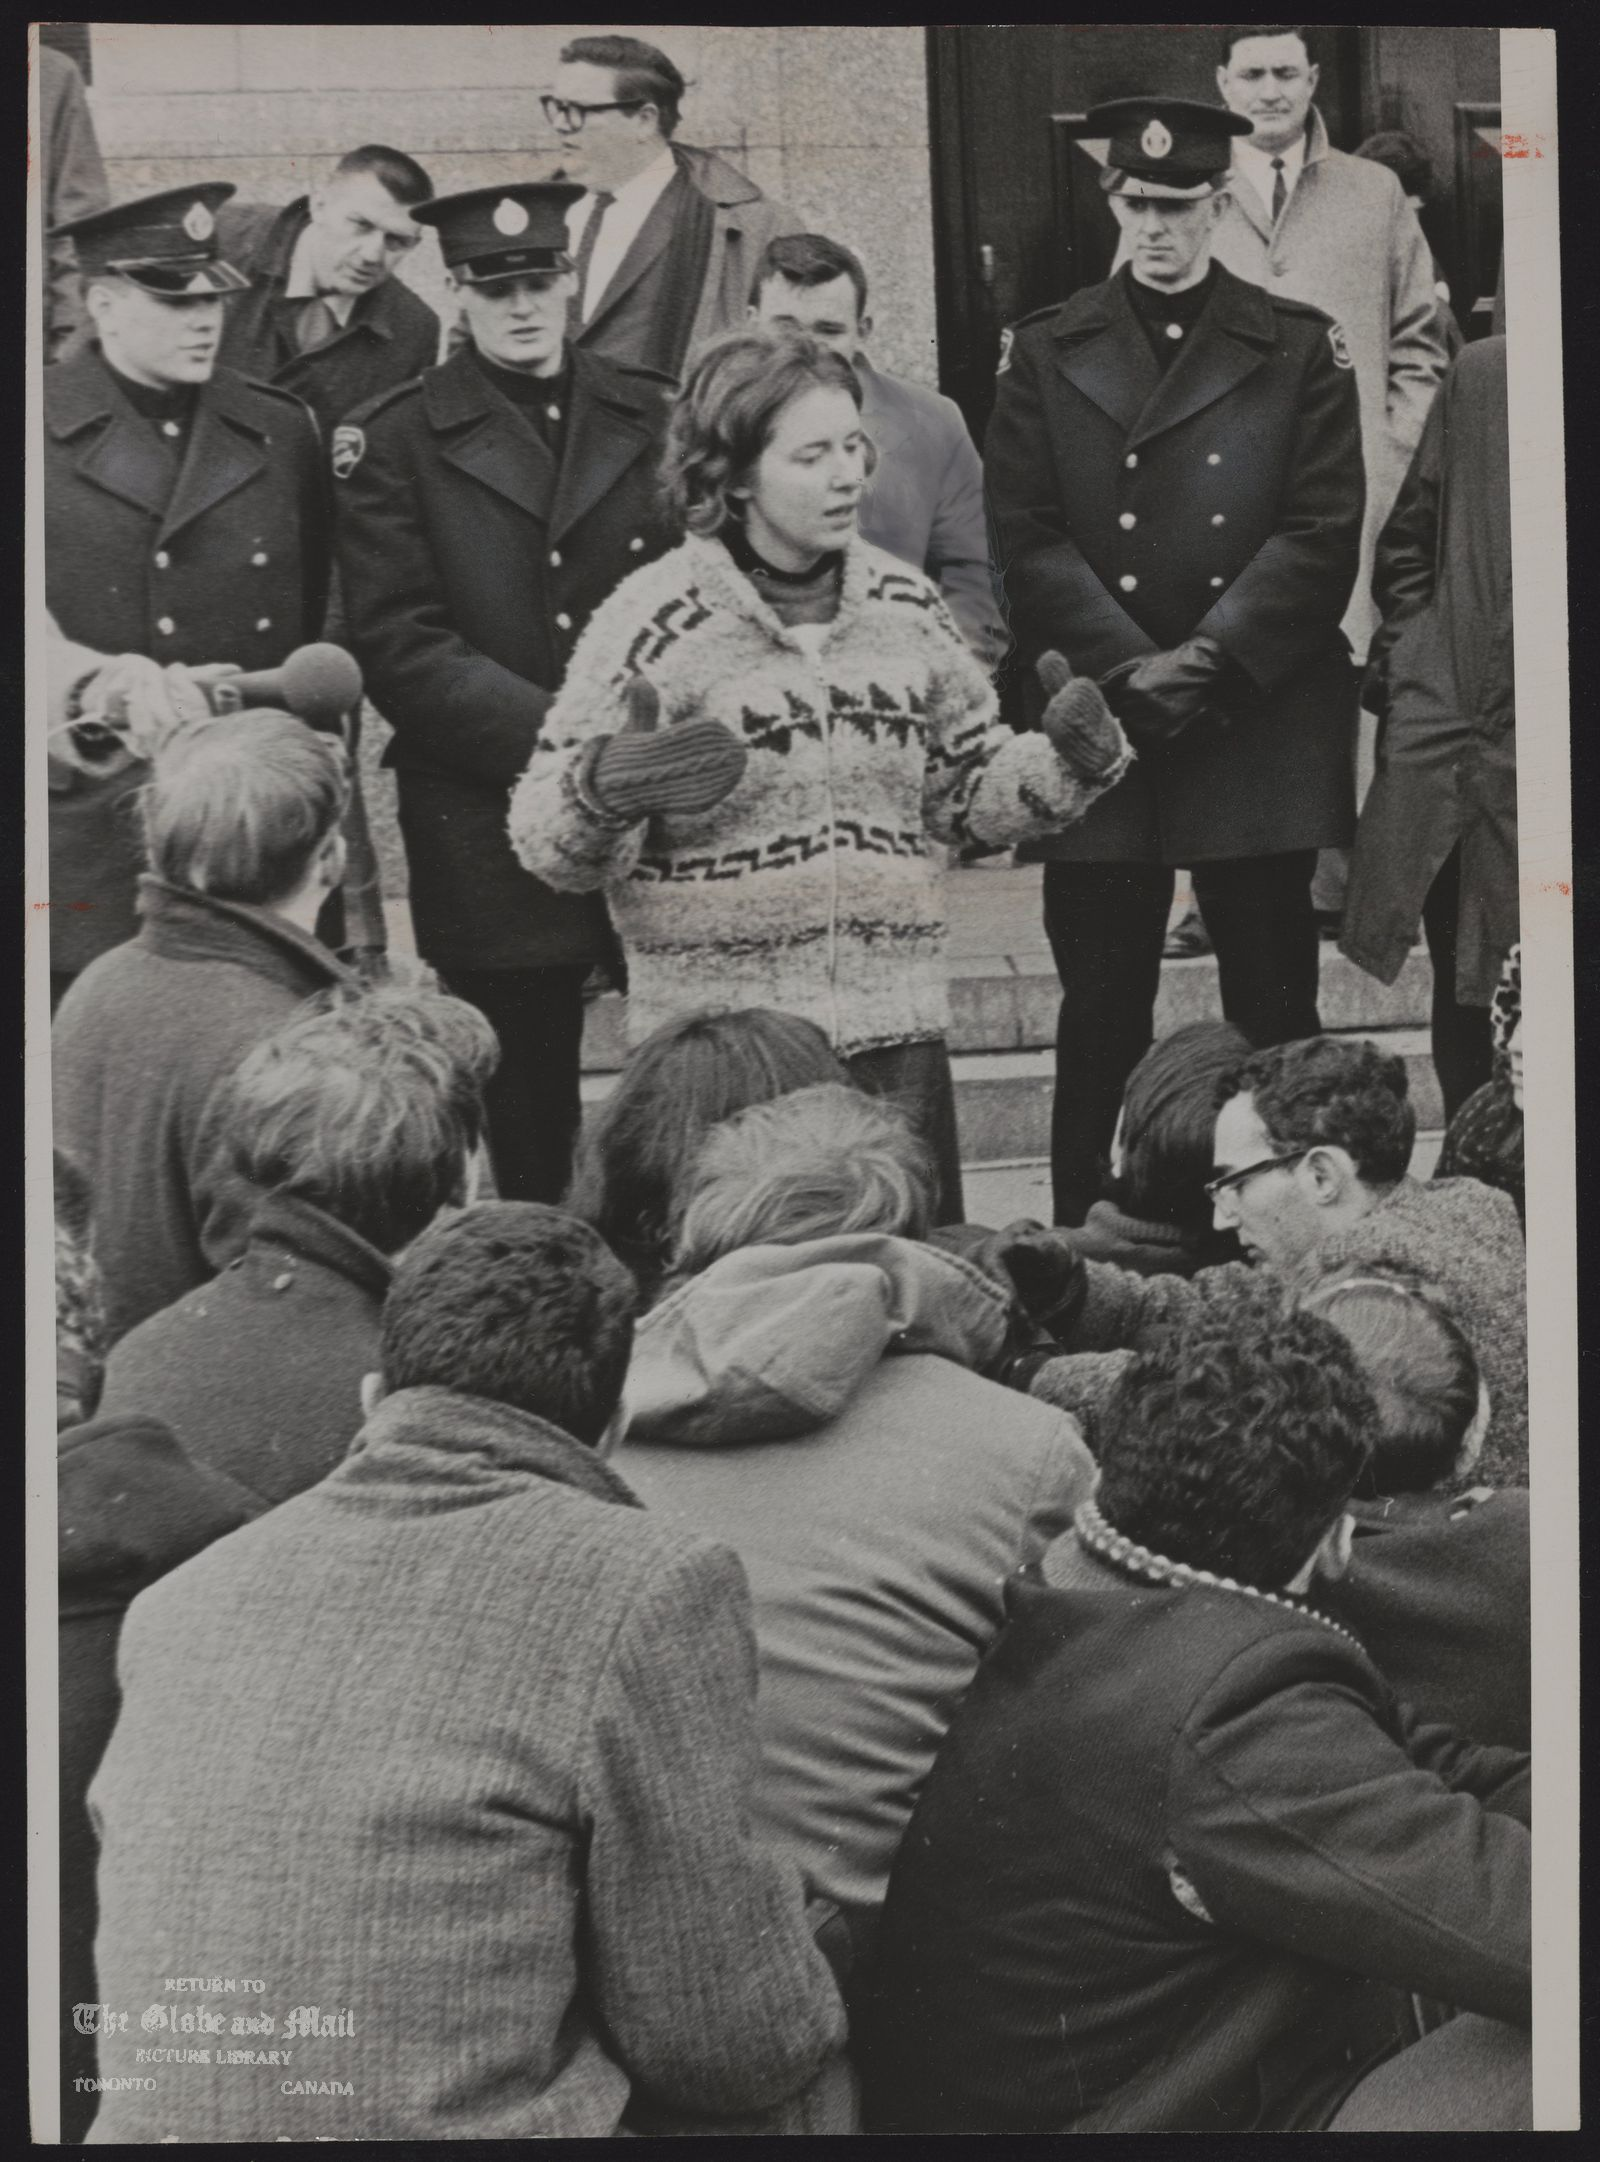 The notes transcribed from the back of this photograph are as follows: DEMONSTRATIONS Racial Jill Answeiler, first year student at New College and spokesman for the demonstrators addresses them after their ejection from the consulate by police. She was removed next to last. (U.S. Consulate, University Ave. Tor)